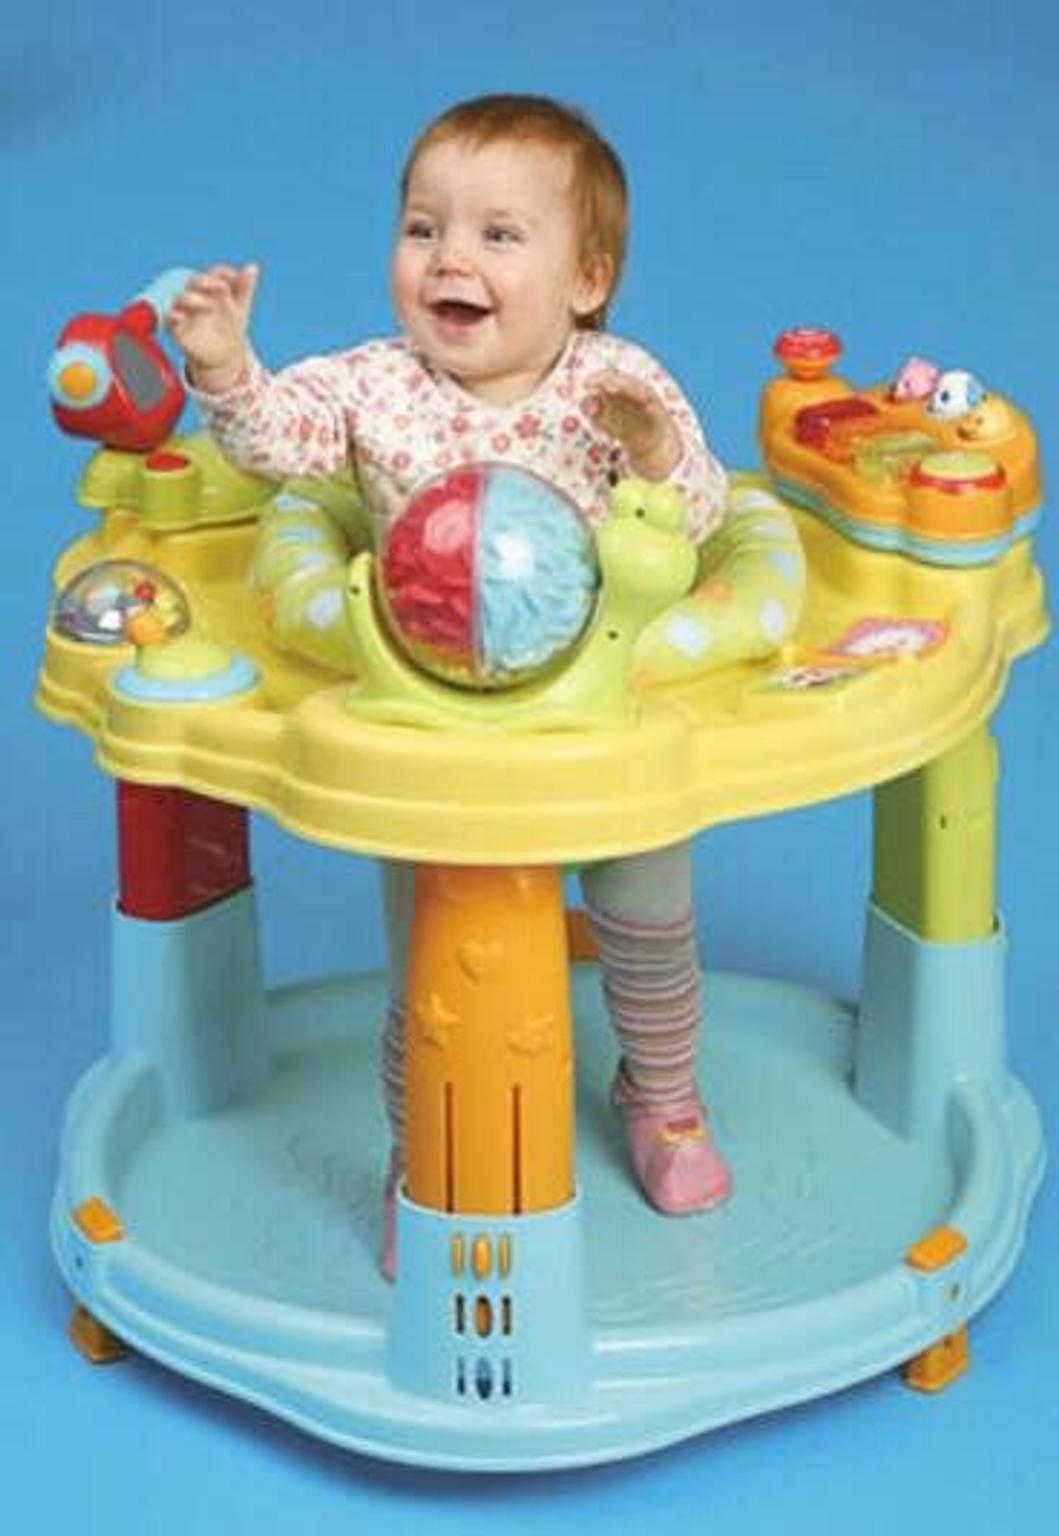 22040d725 Baby Activity Centre in Huntingdonshire for £20.00 for sale - Shpock